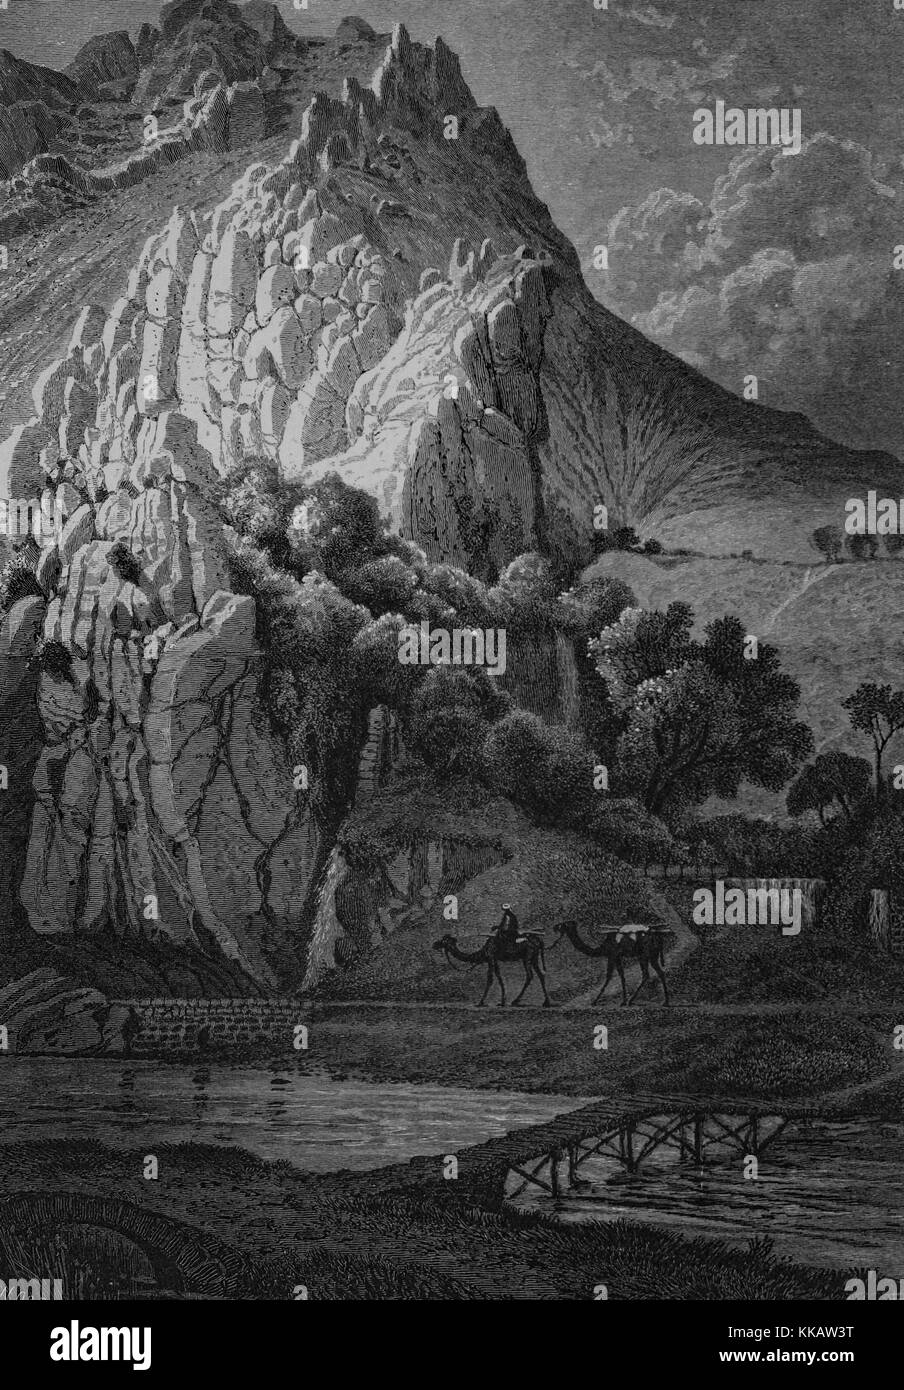 An etching depicting a man guiding camels through the gorge of The Barada, which is the main river of Damascus, - Stock Image